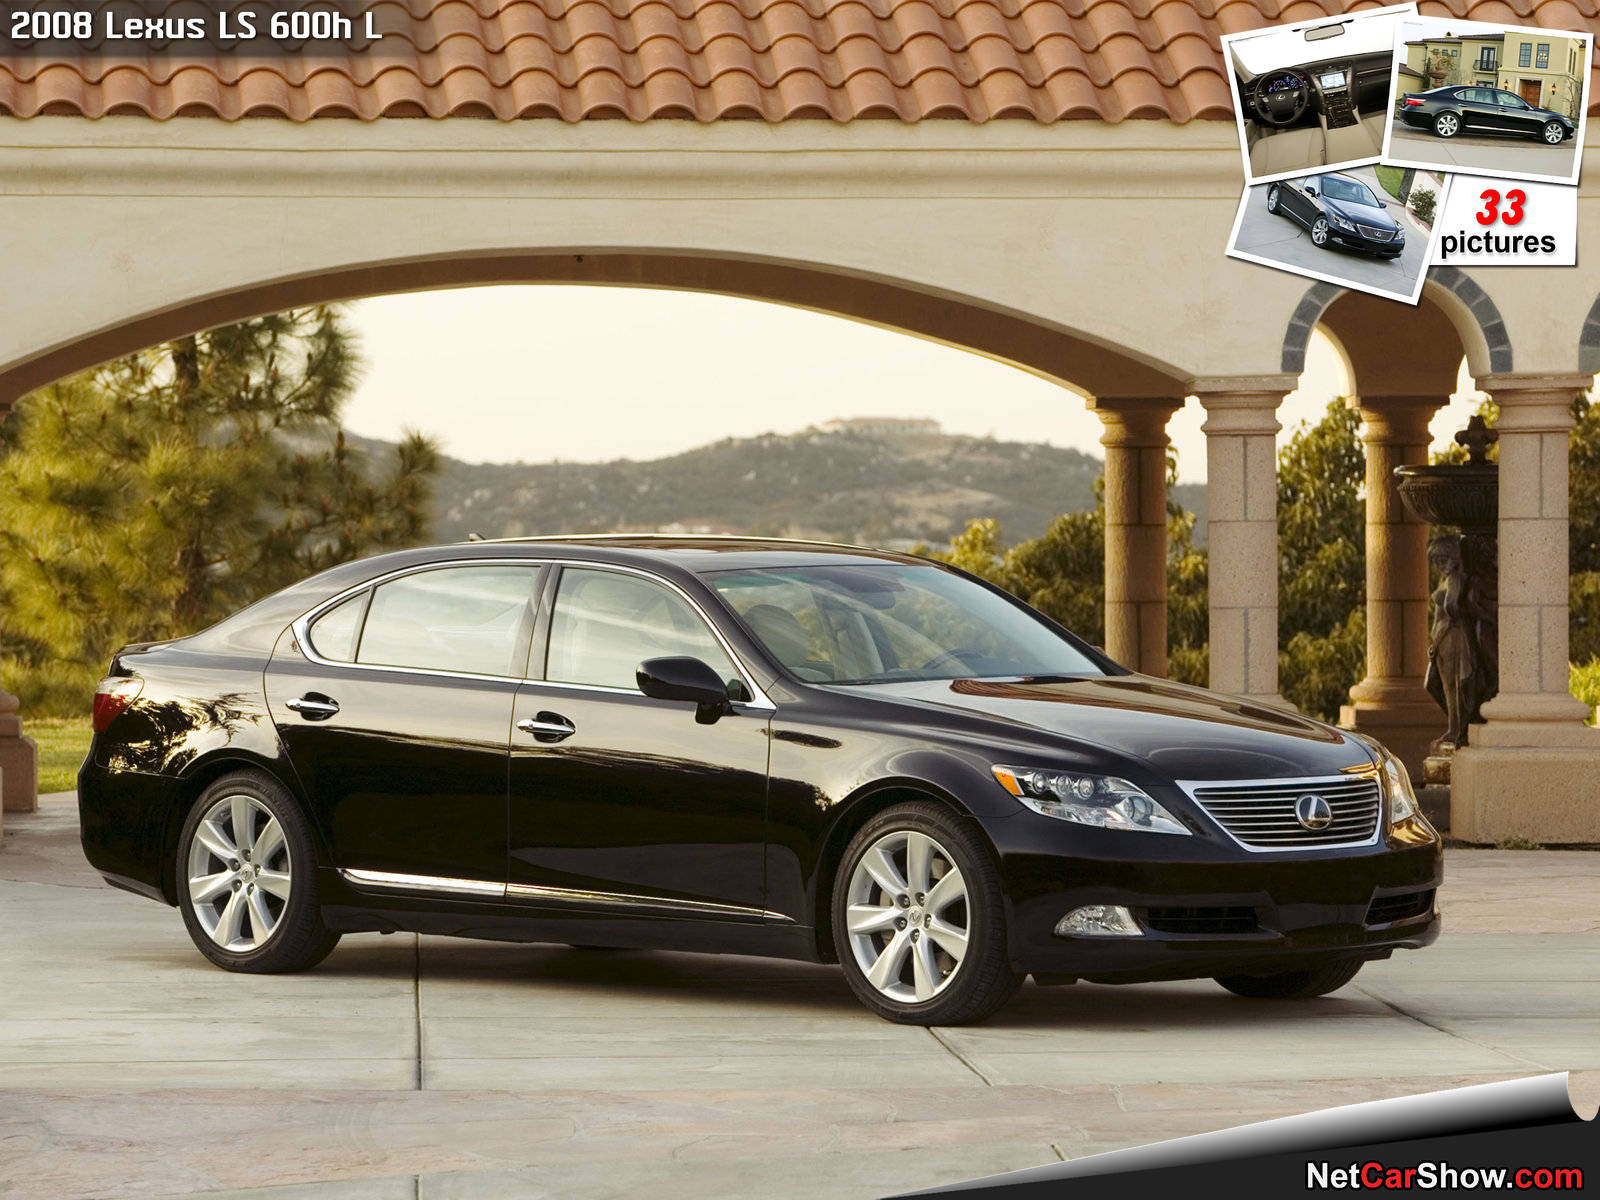 Pictures of lexus ls #7